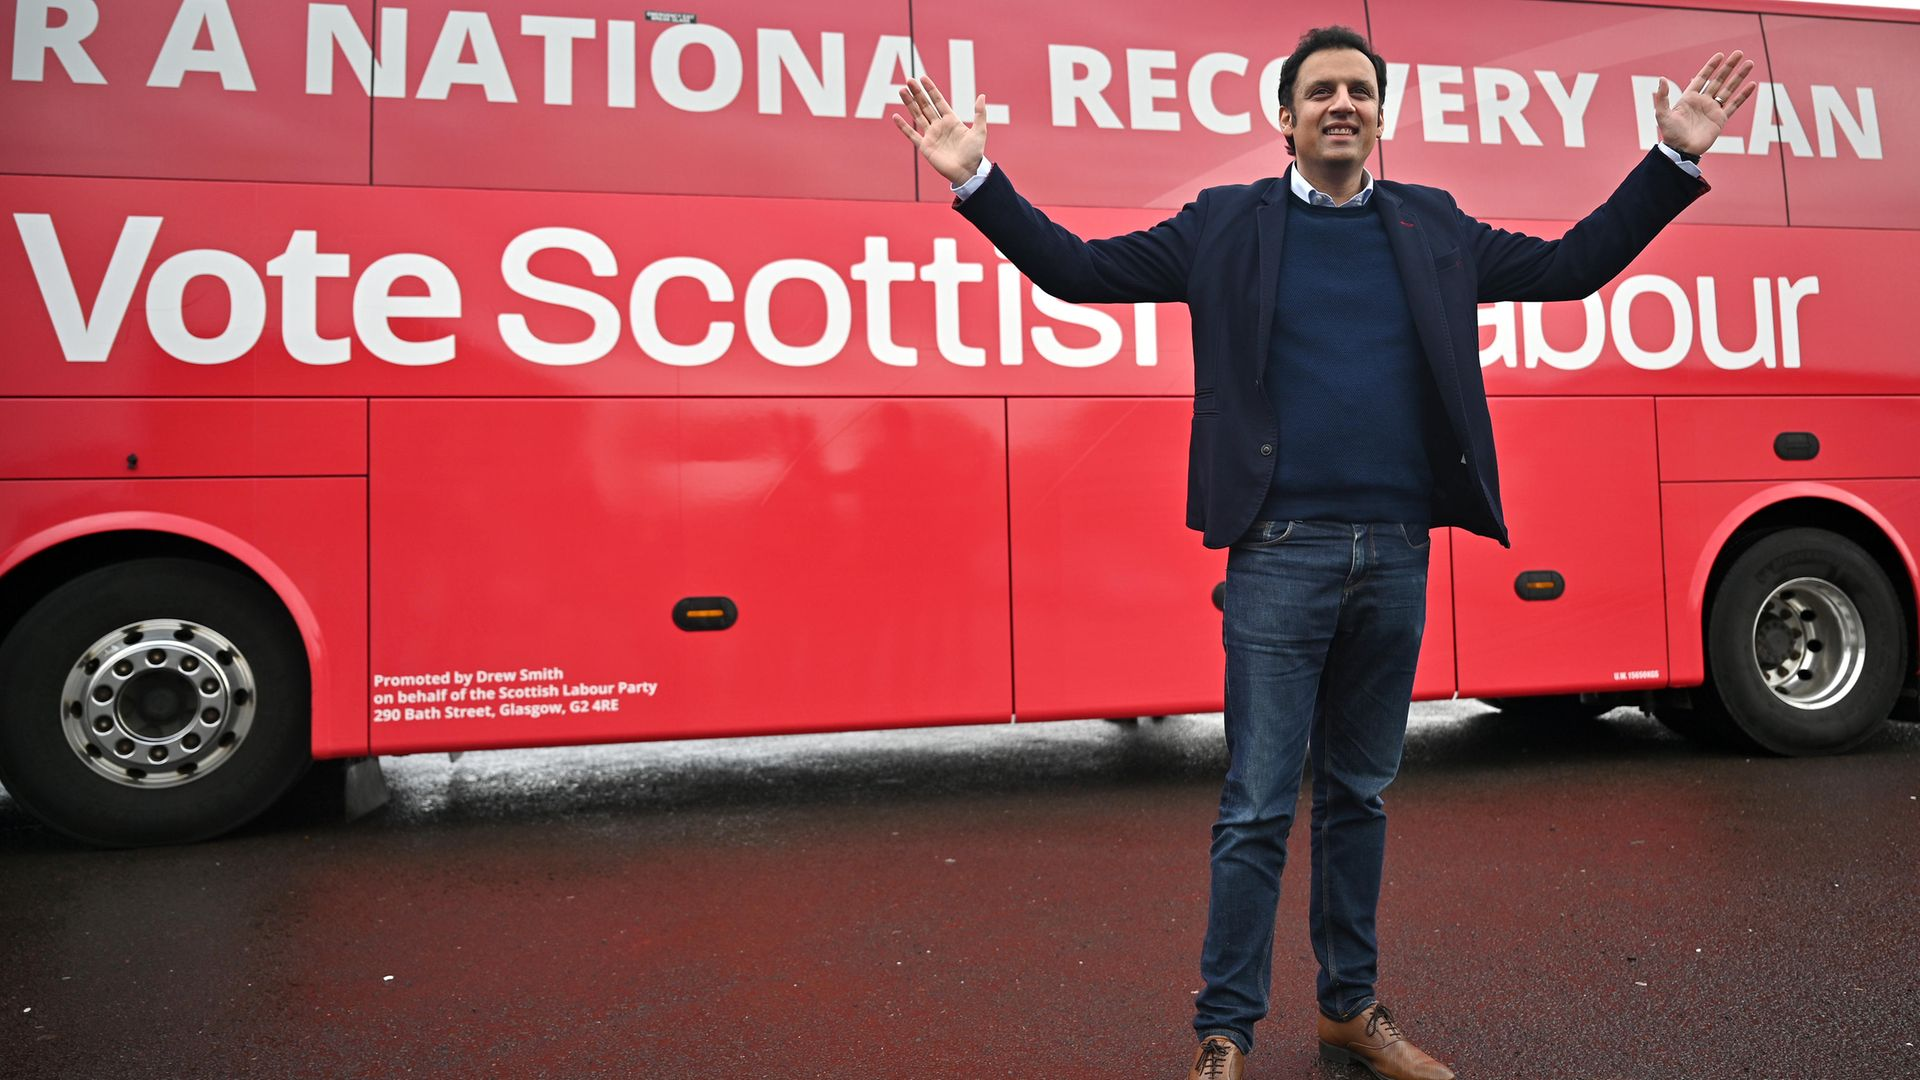 Scottish Labour leader Anas Sarwar poses in front of his party's election bus, in Glasgow - Credit: Getty Images